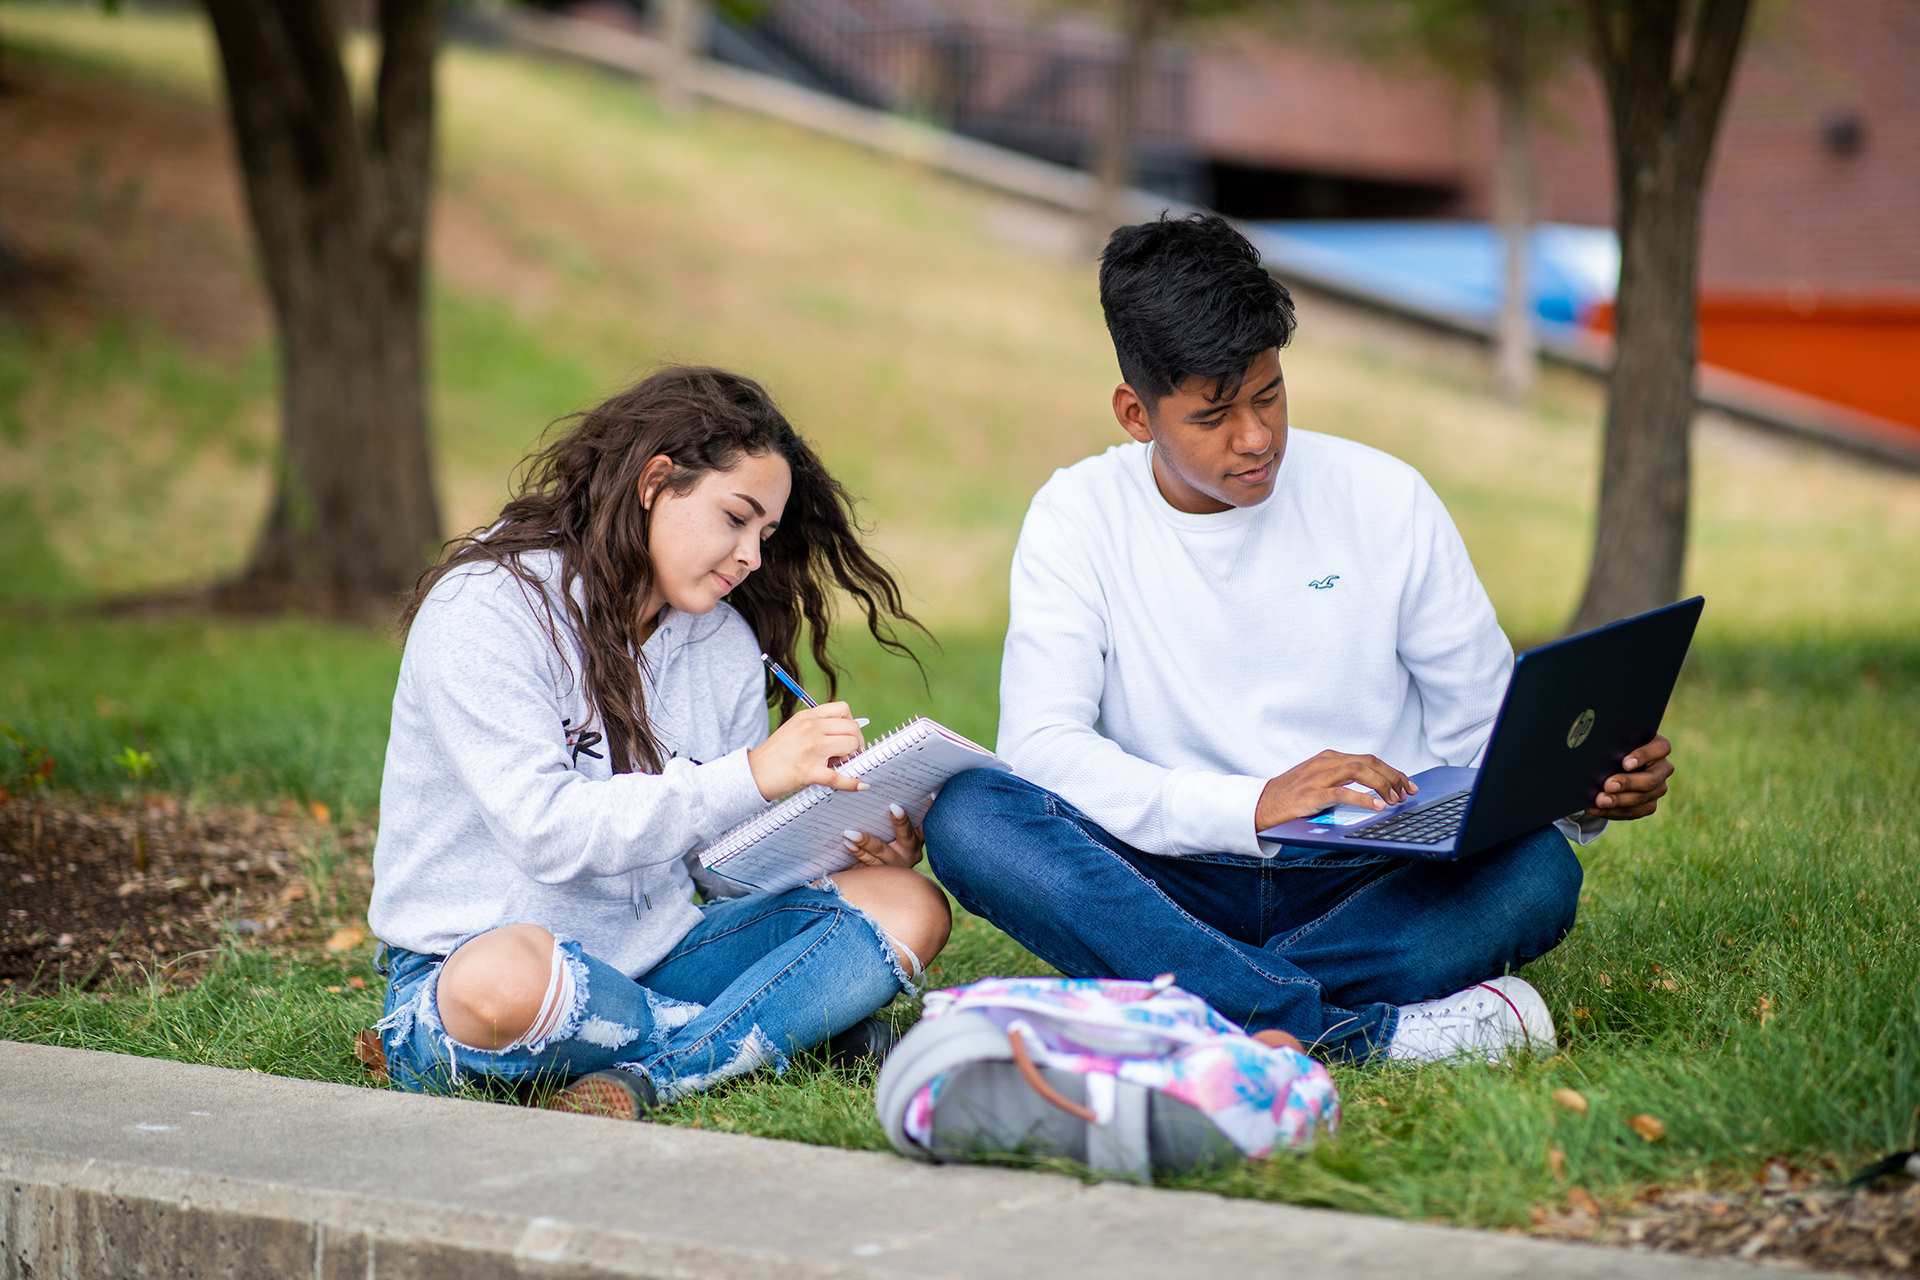 Two young students studying in a grassy area